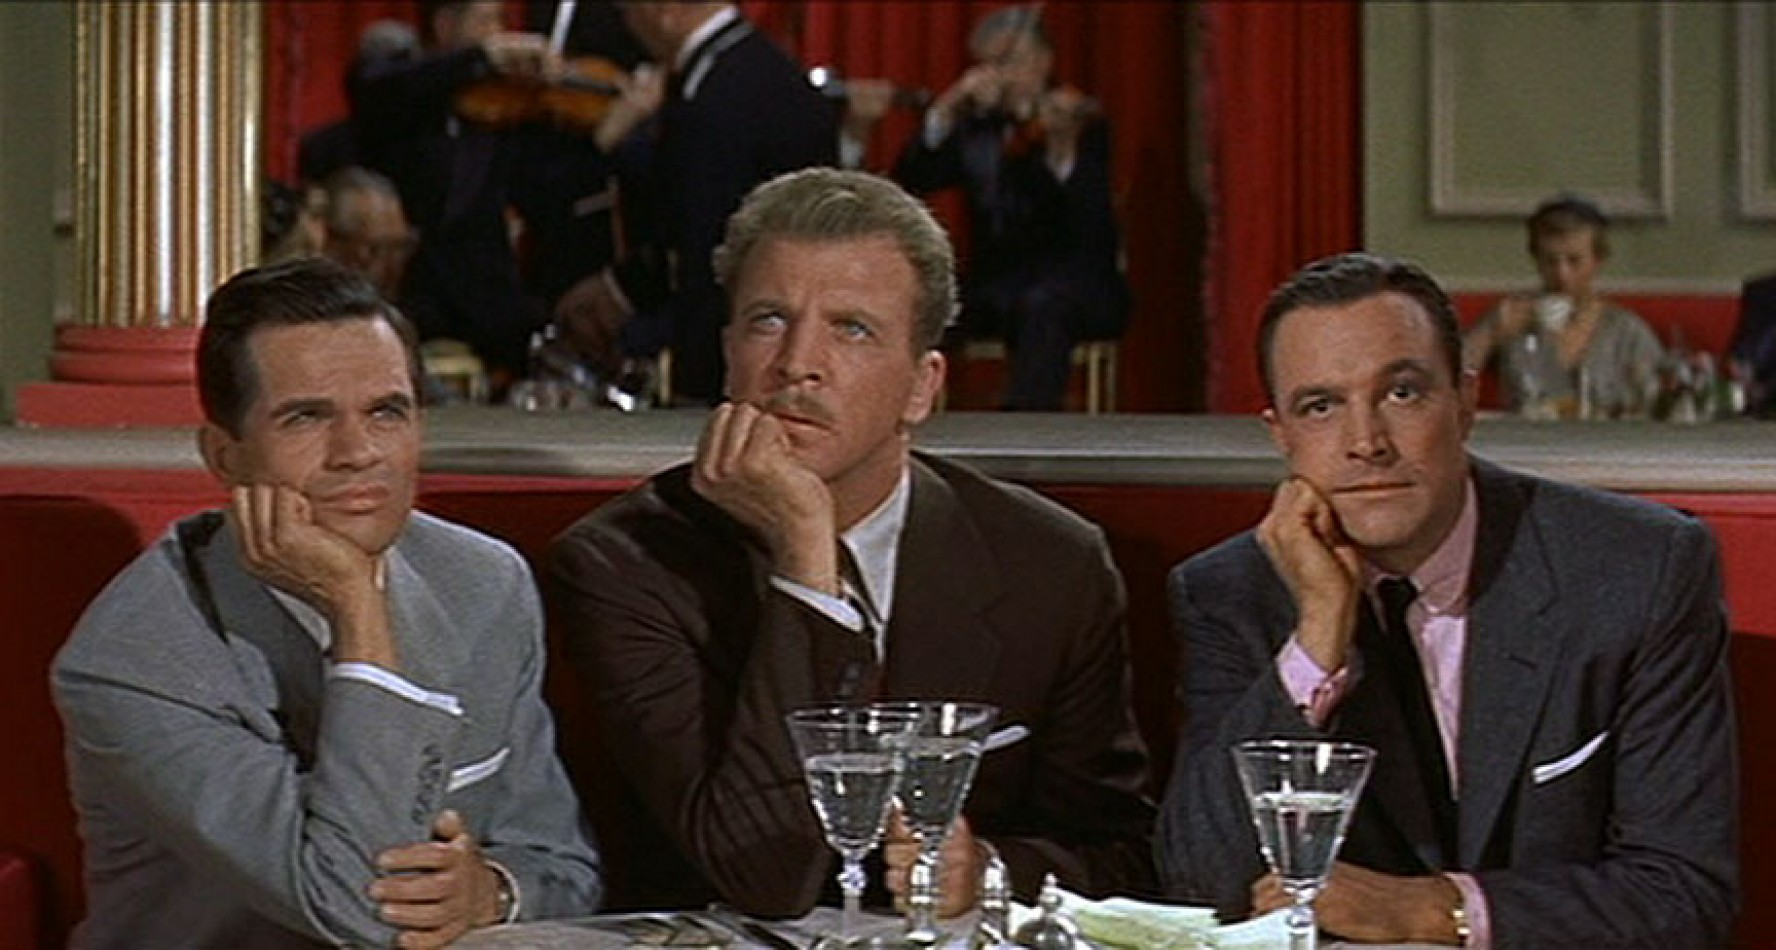 Michael Kidd, Dan Dailey, and Gene Kelly in the MGM musical,  It's Always Fair Weather  (1955).